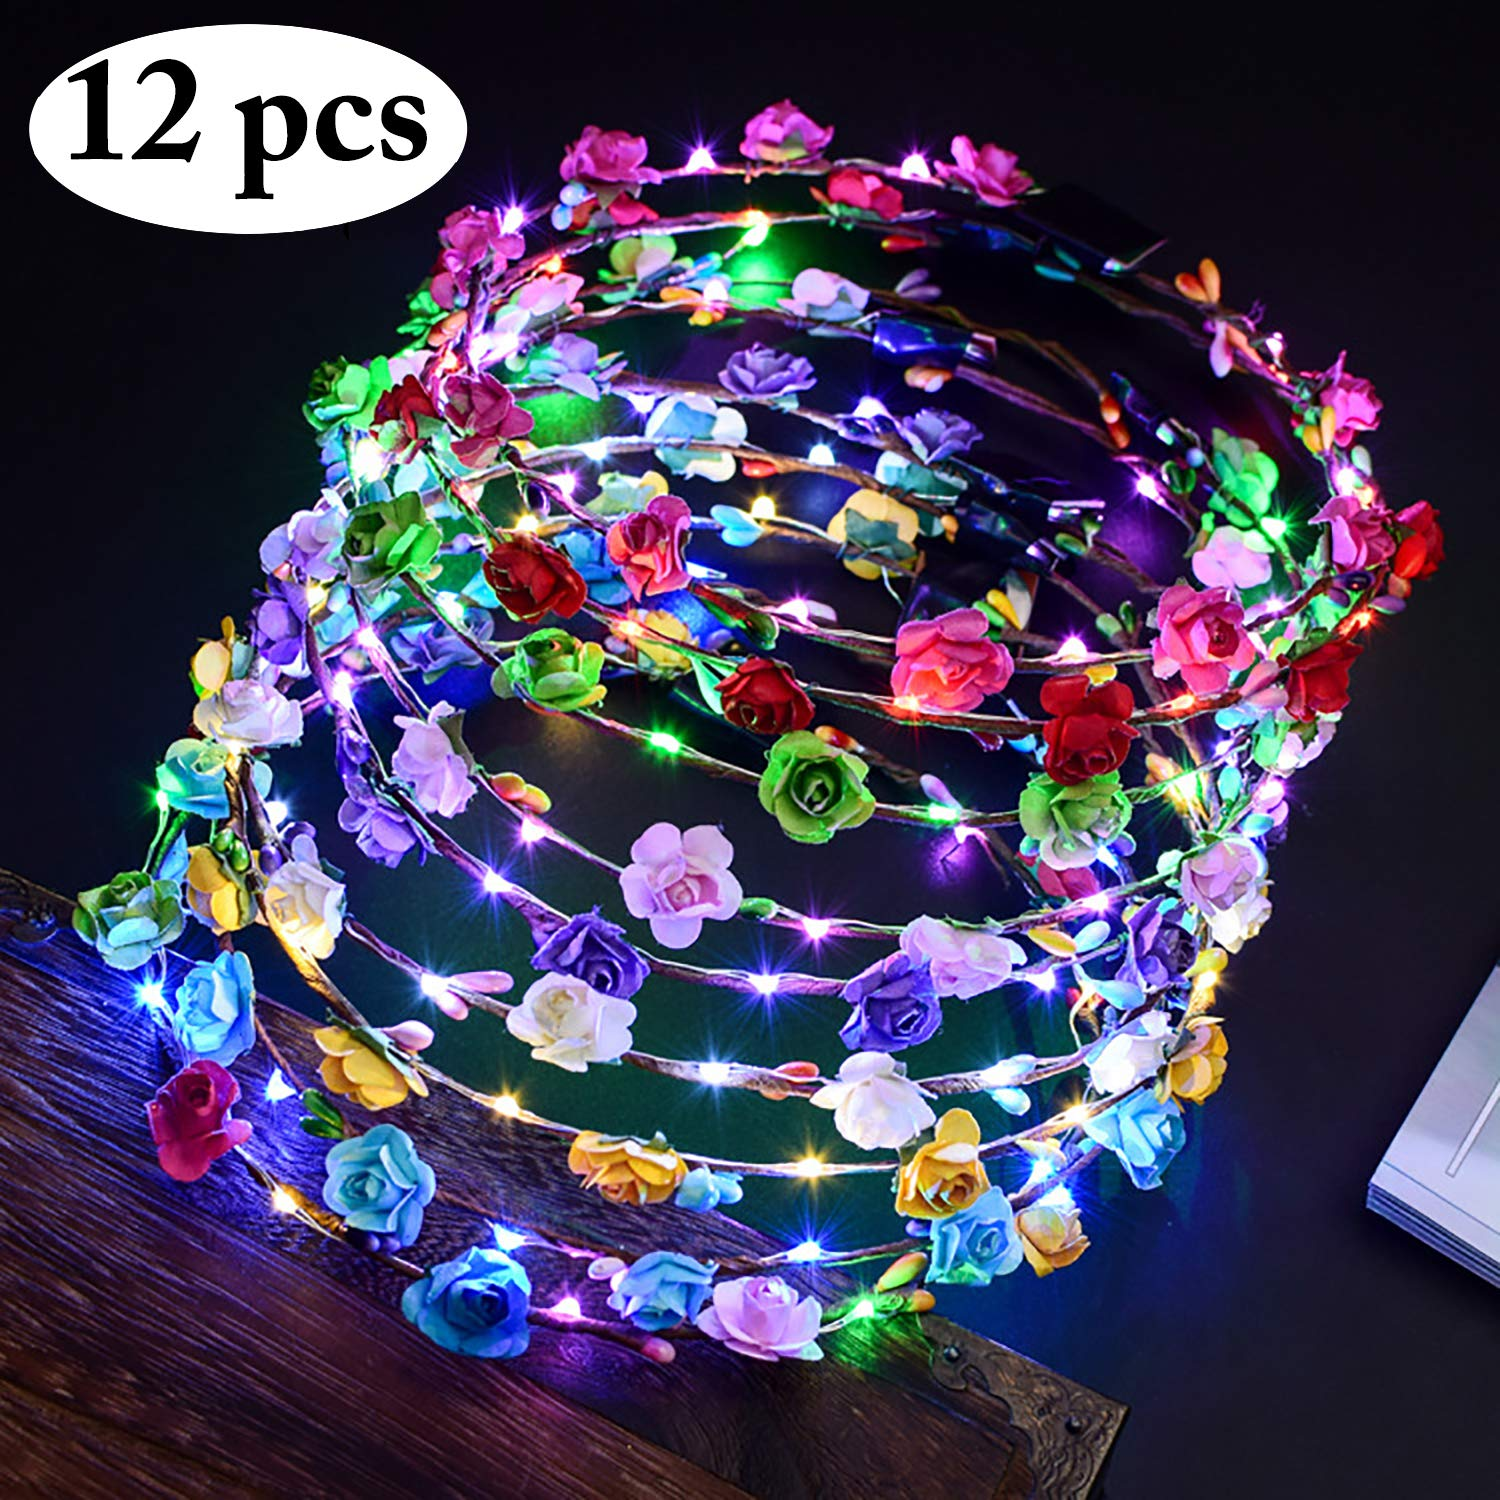 Outgeek LED Flower Headband, 12Pcs Flower Luminous Crown